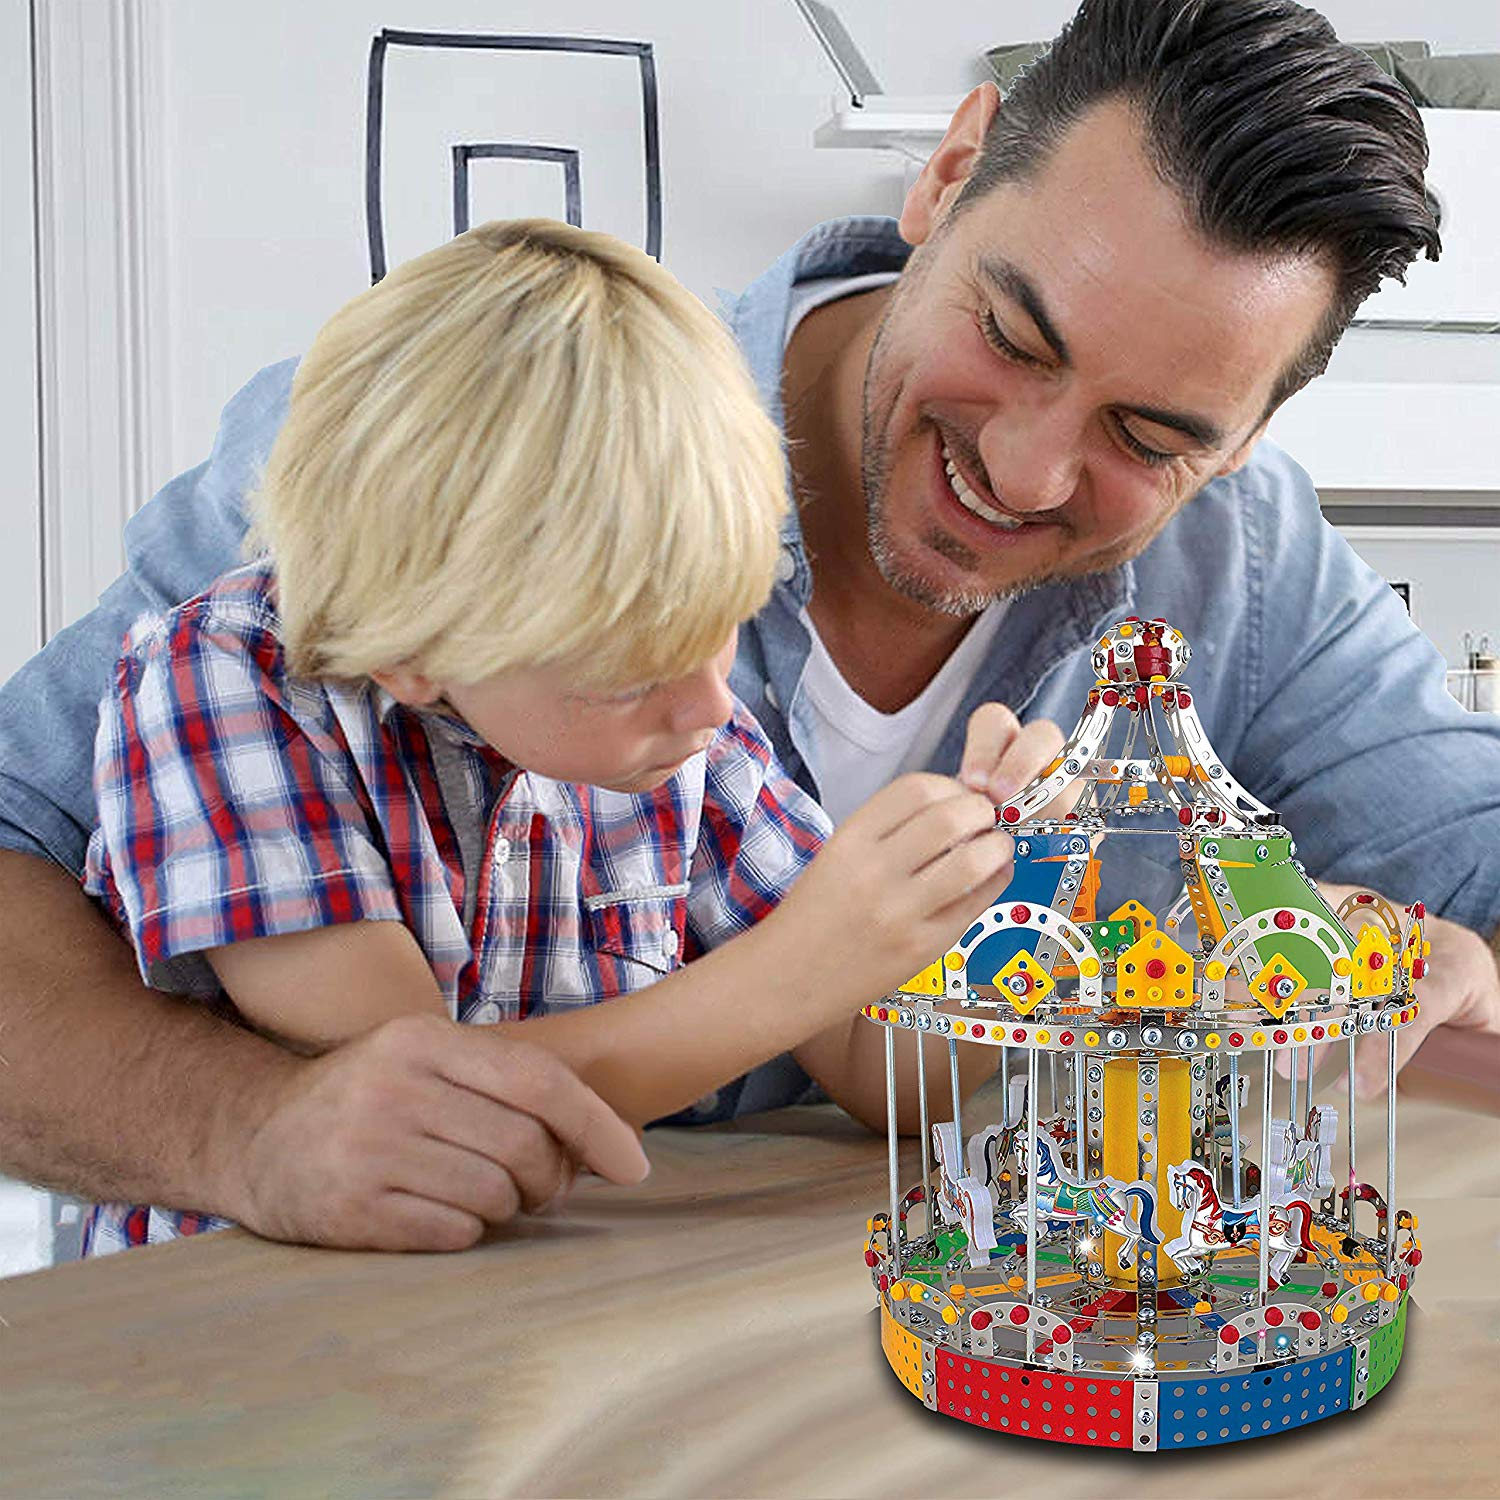 IQ Toys, Carousel Building Metal Model, Lights & Music 1423 pcs